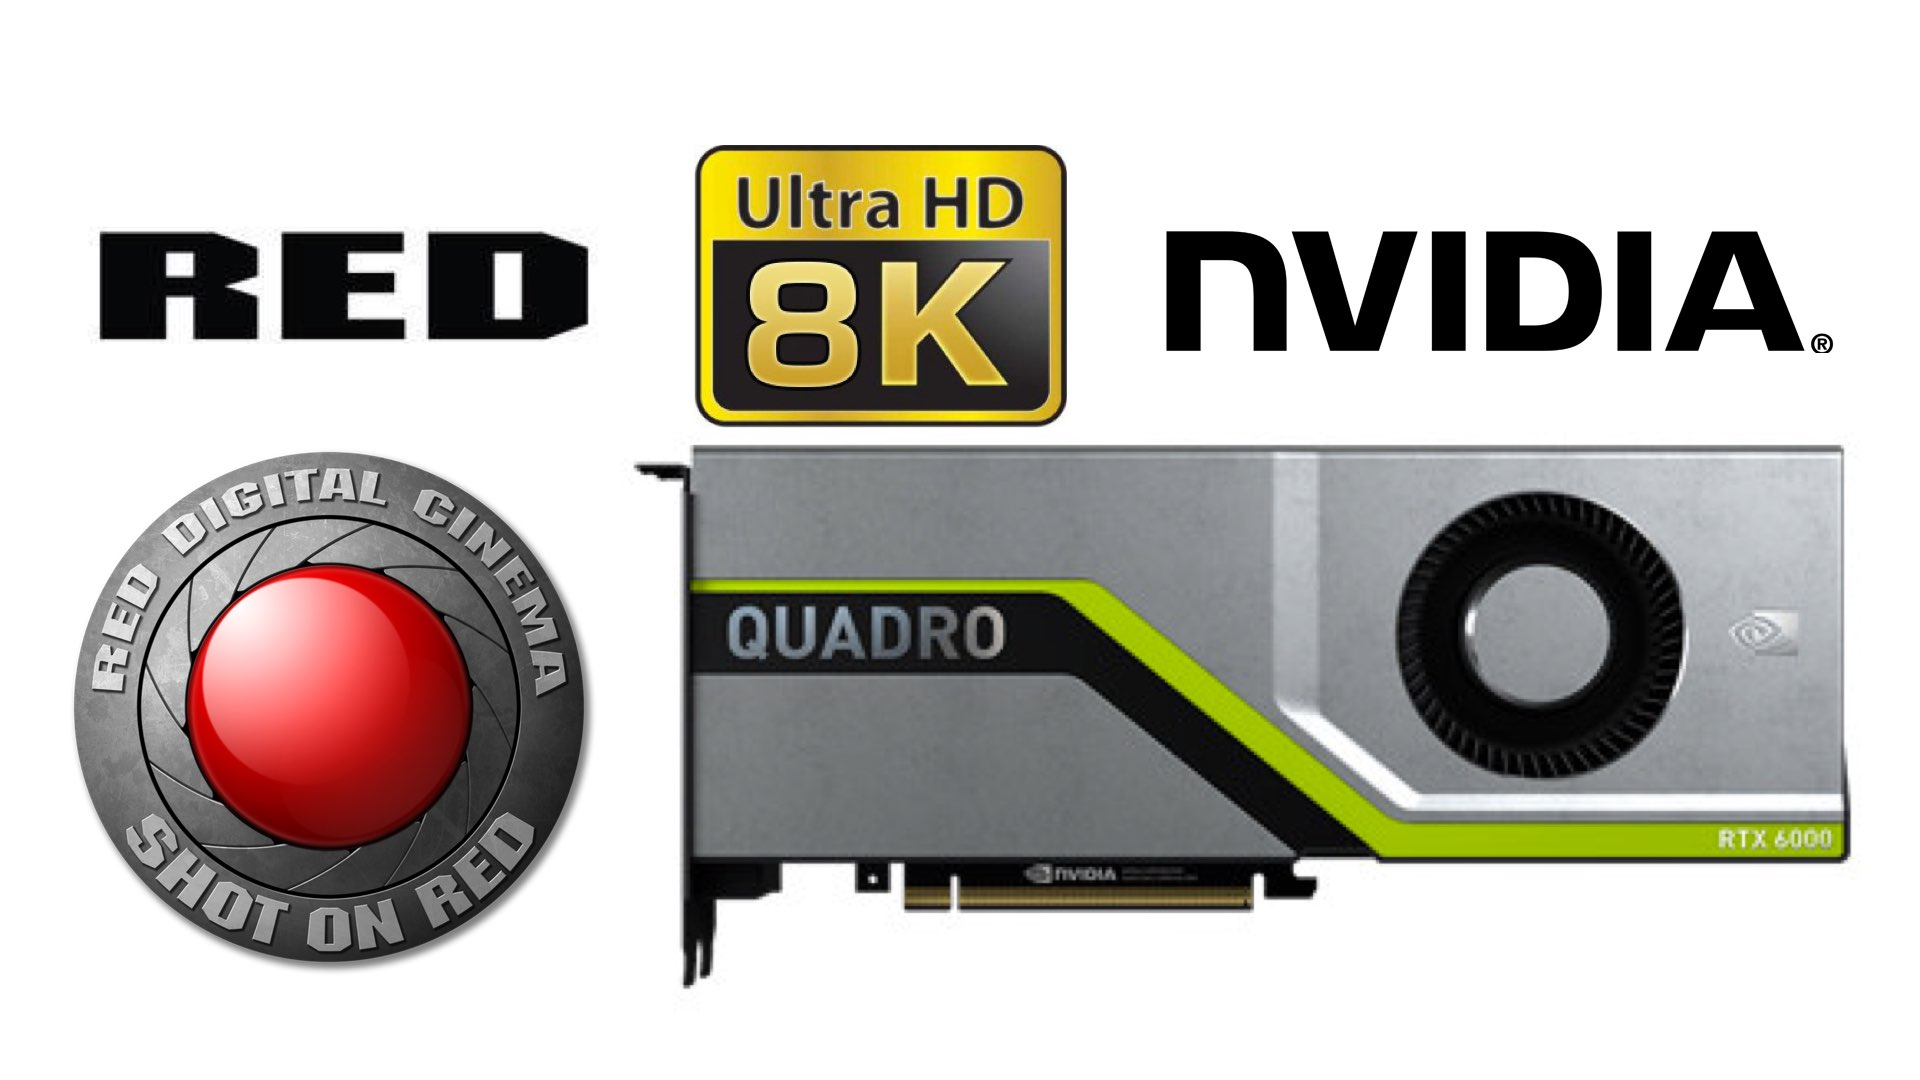 NVIDIA $10,000 Quadro RTX Graphic Card to Boost RED 8K Editing for